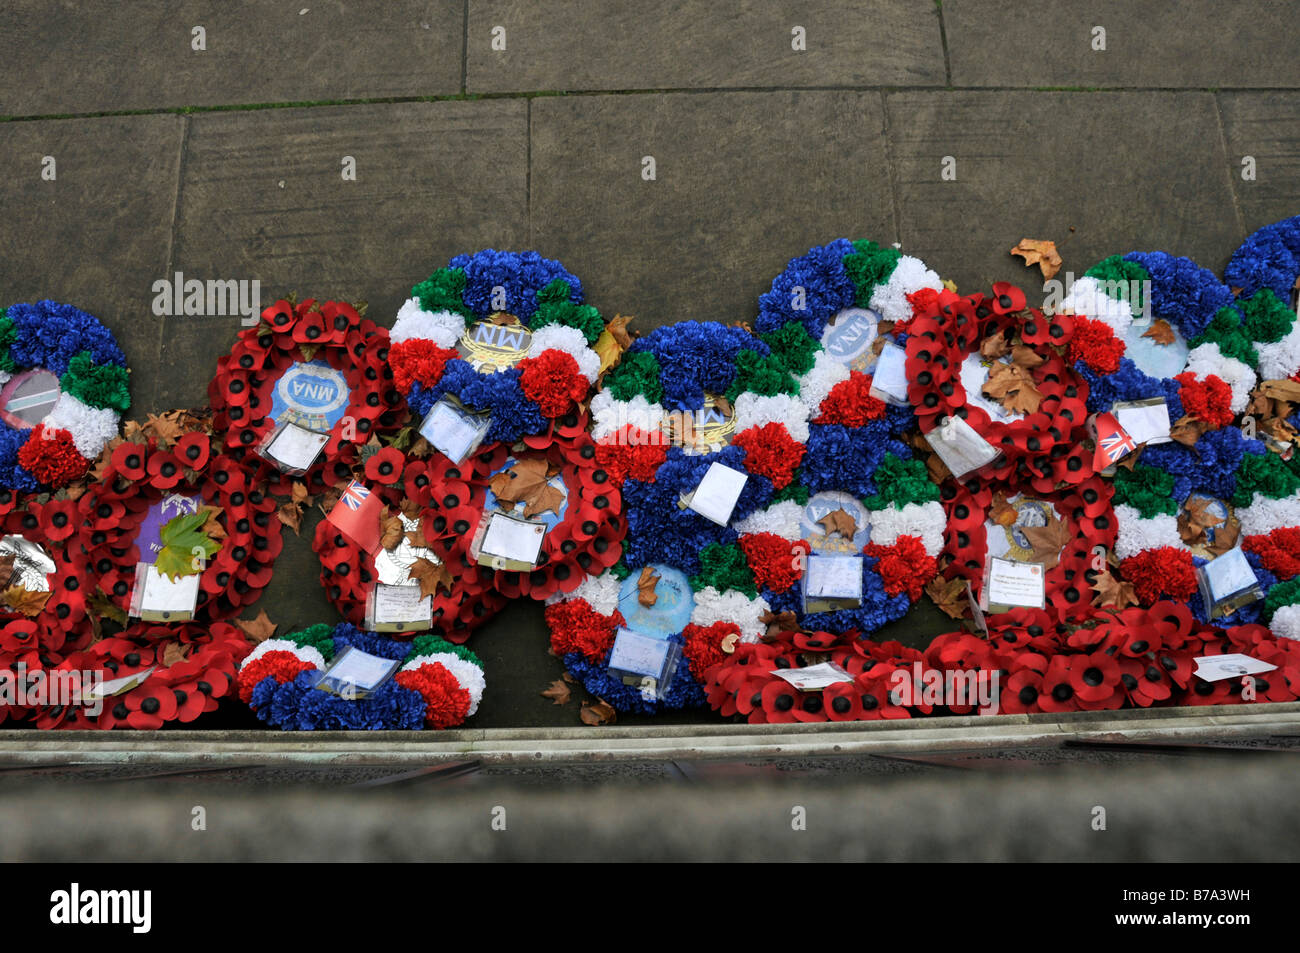 Close up of Poppy wreaths at trinity square during a Remembrance Service - Stock Image